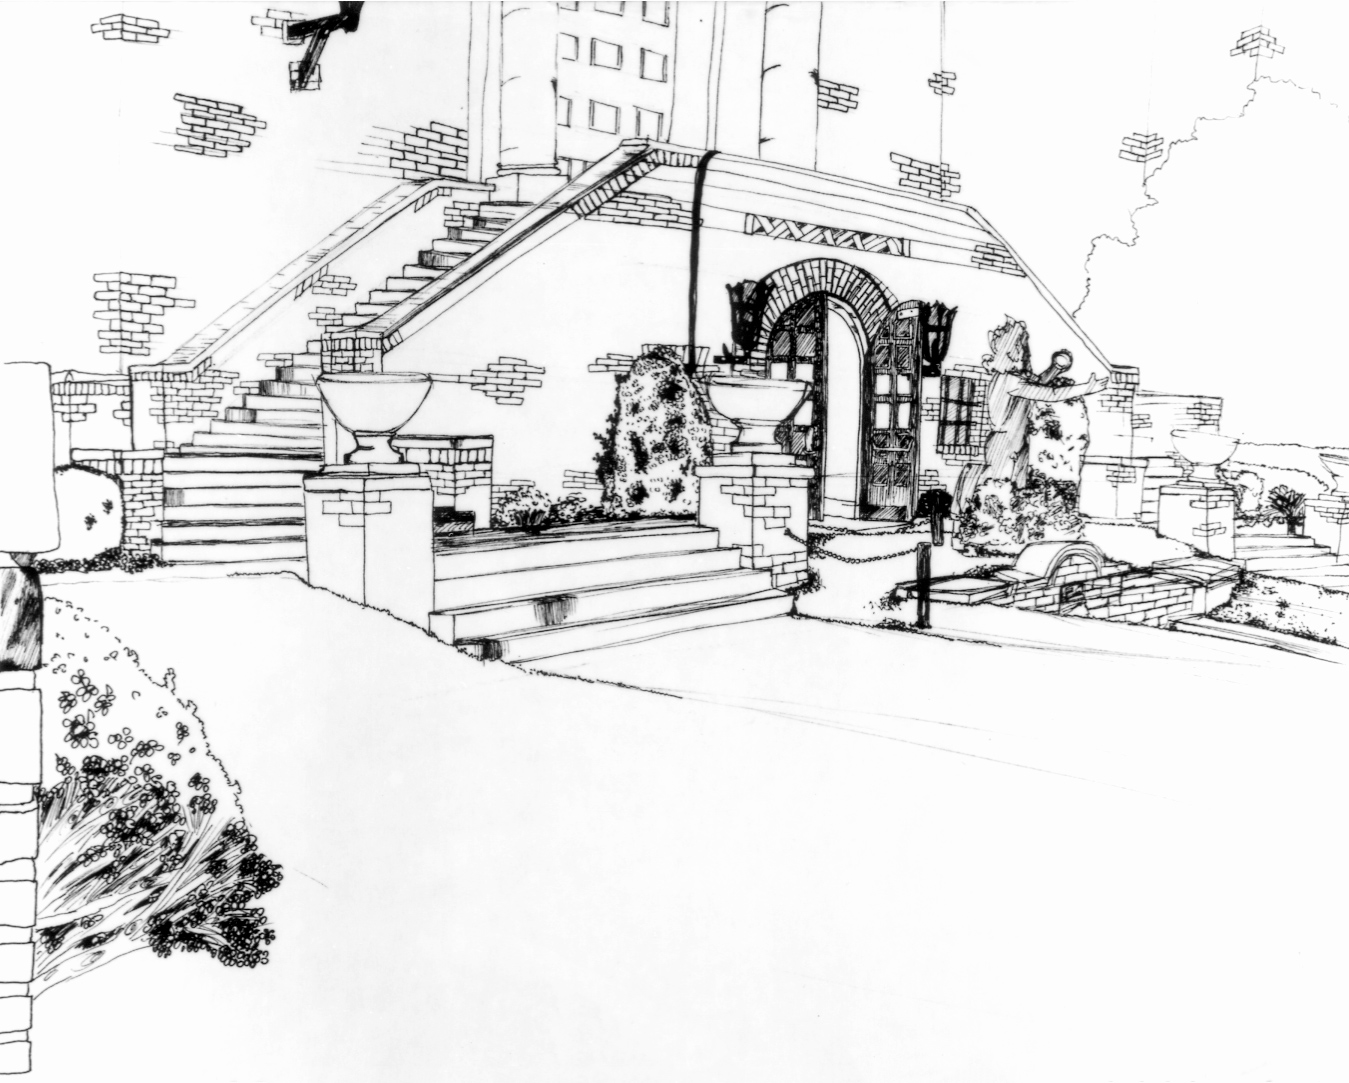 UPenn Anthropology Museum Sketch. Pen and Ink. 1985